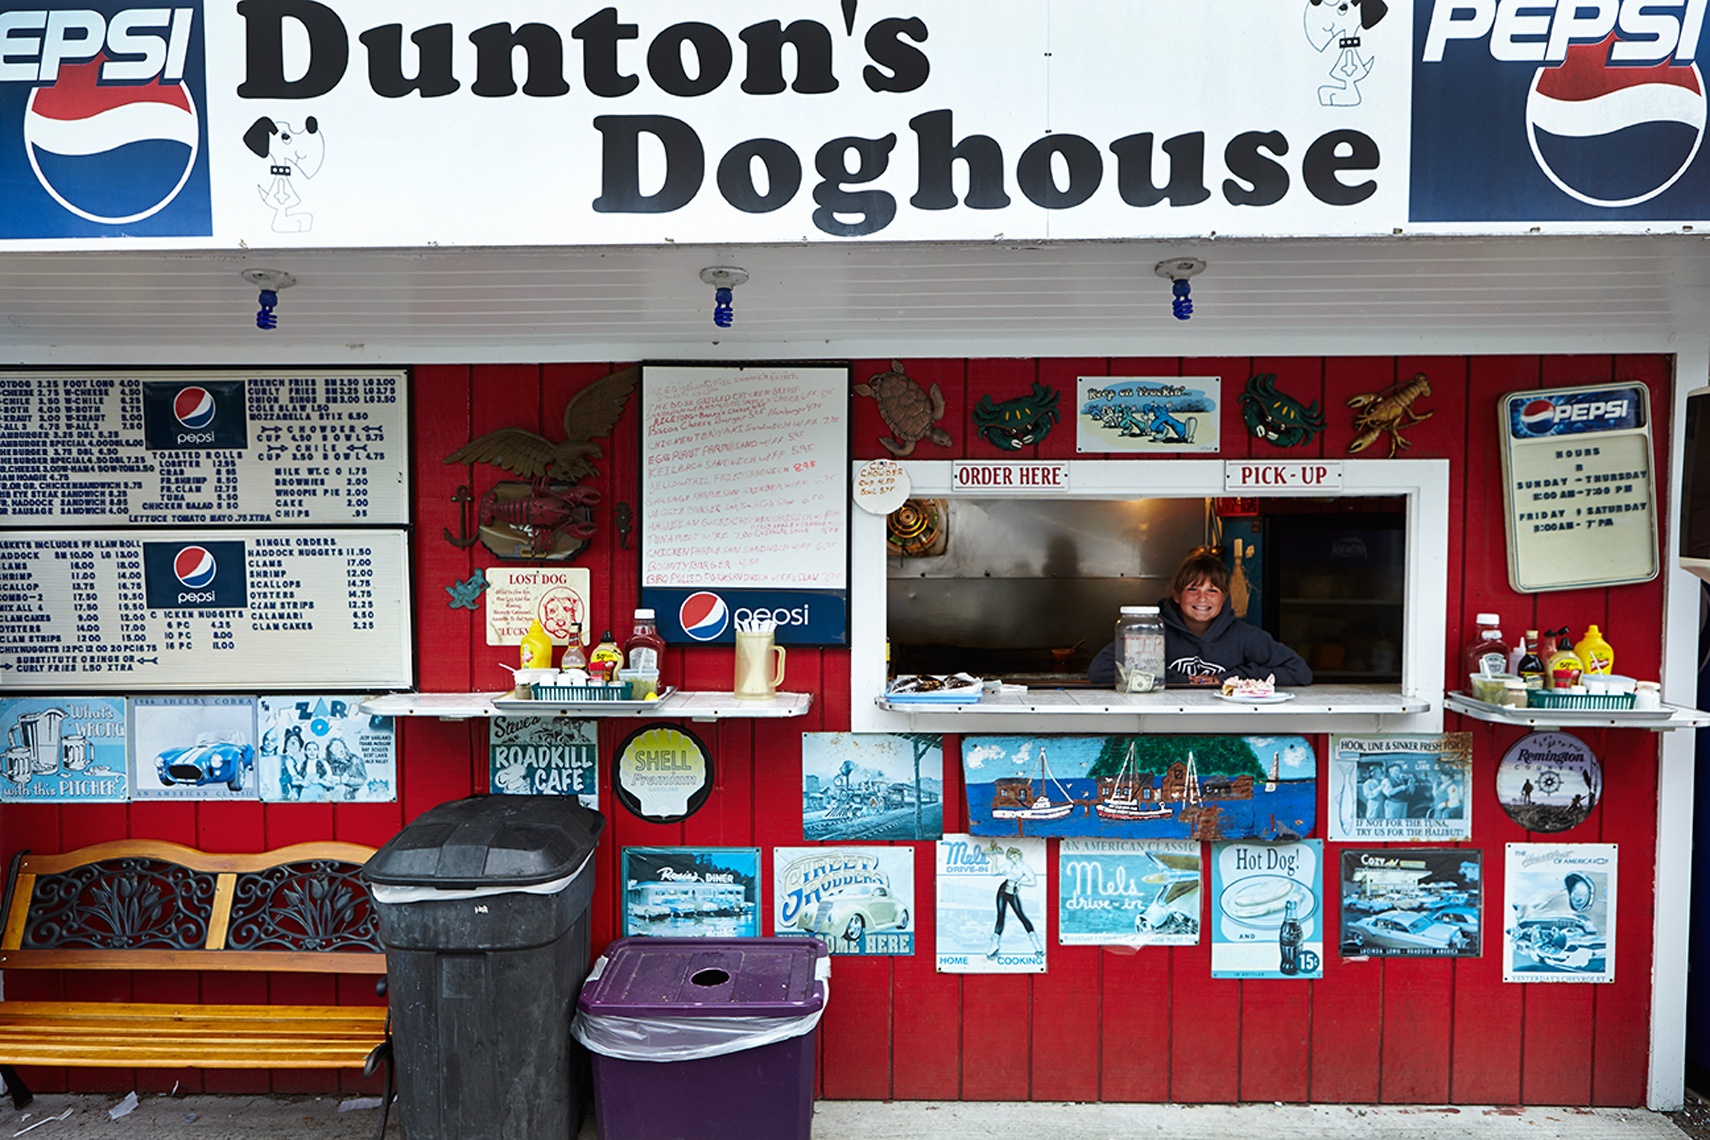 girl in duntons doghouse